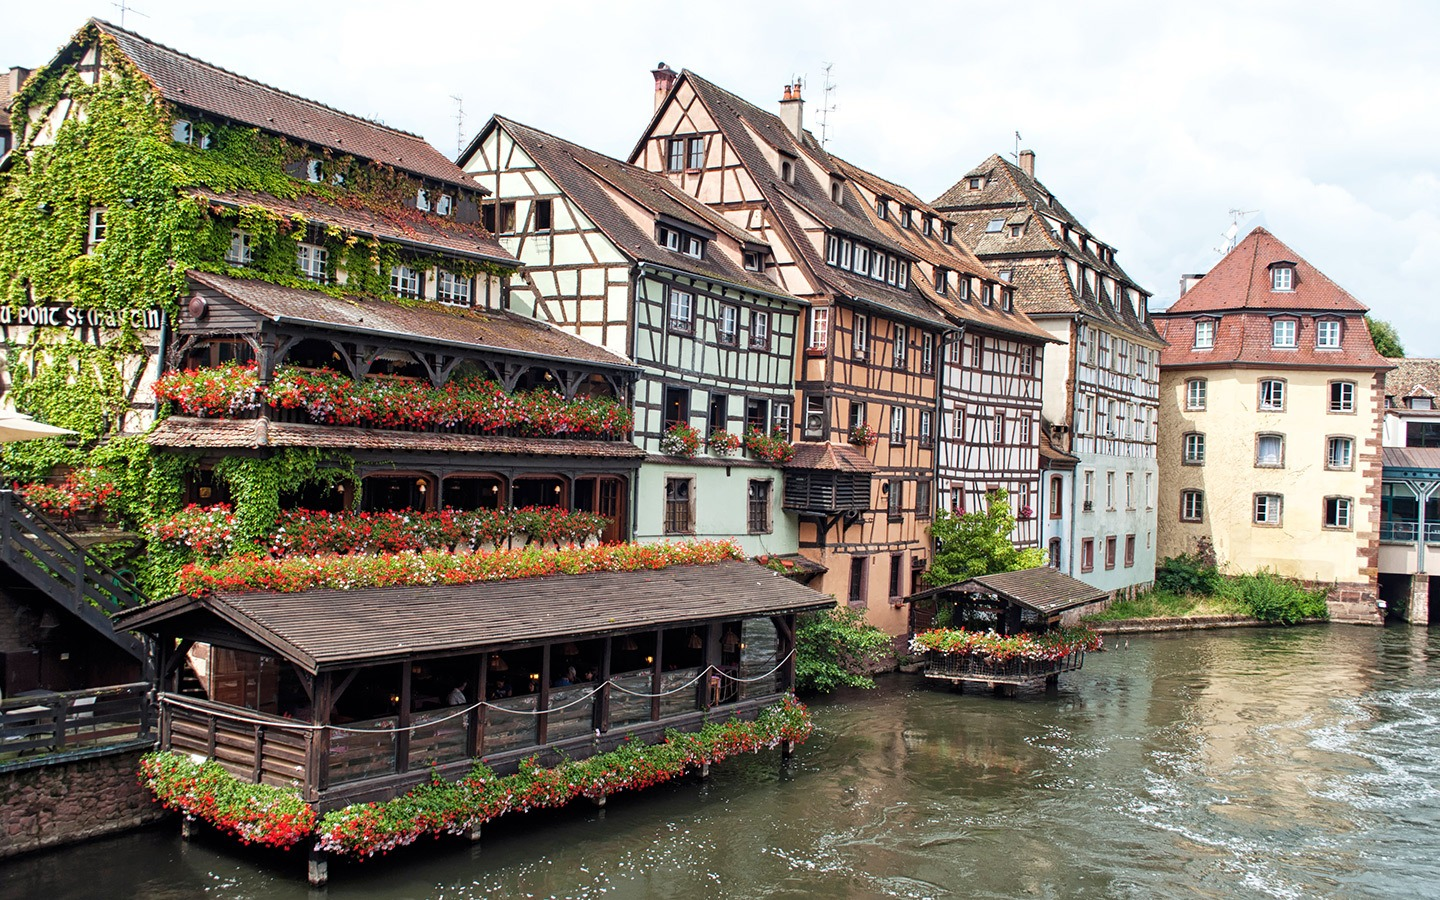 Strasbourg's Petite-France historic district